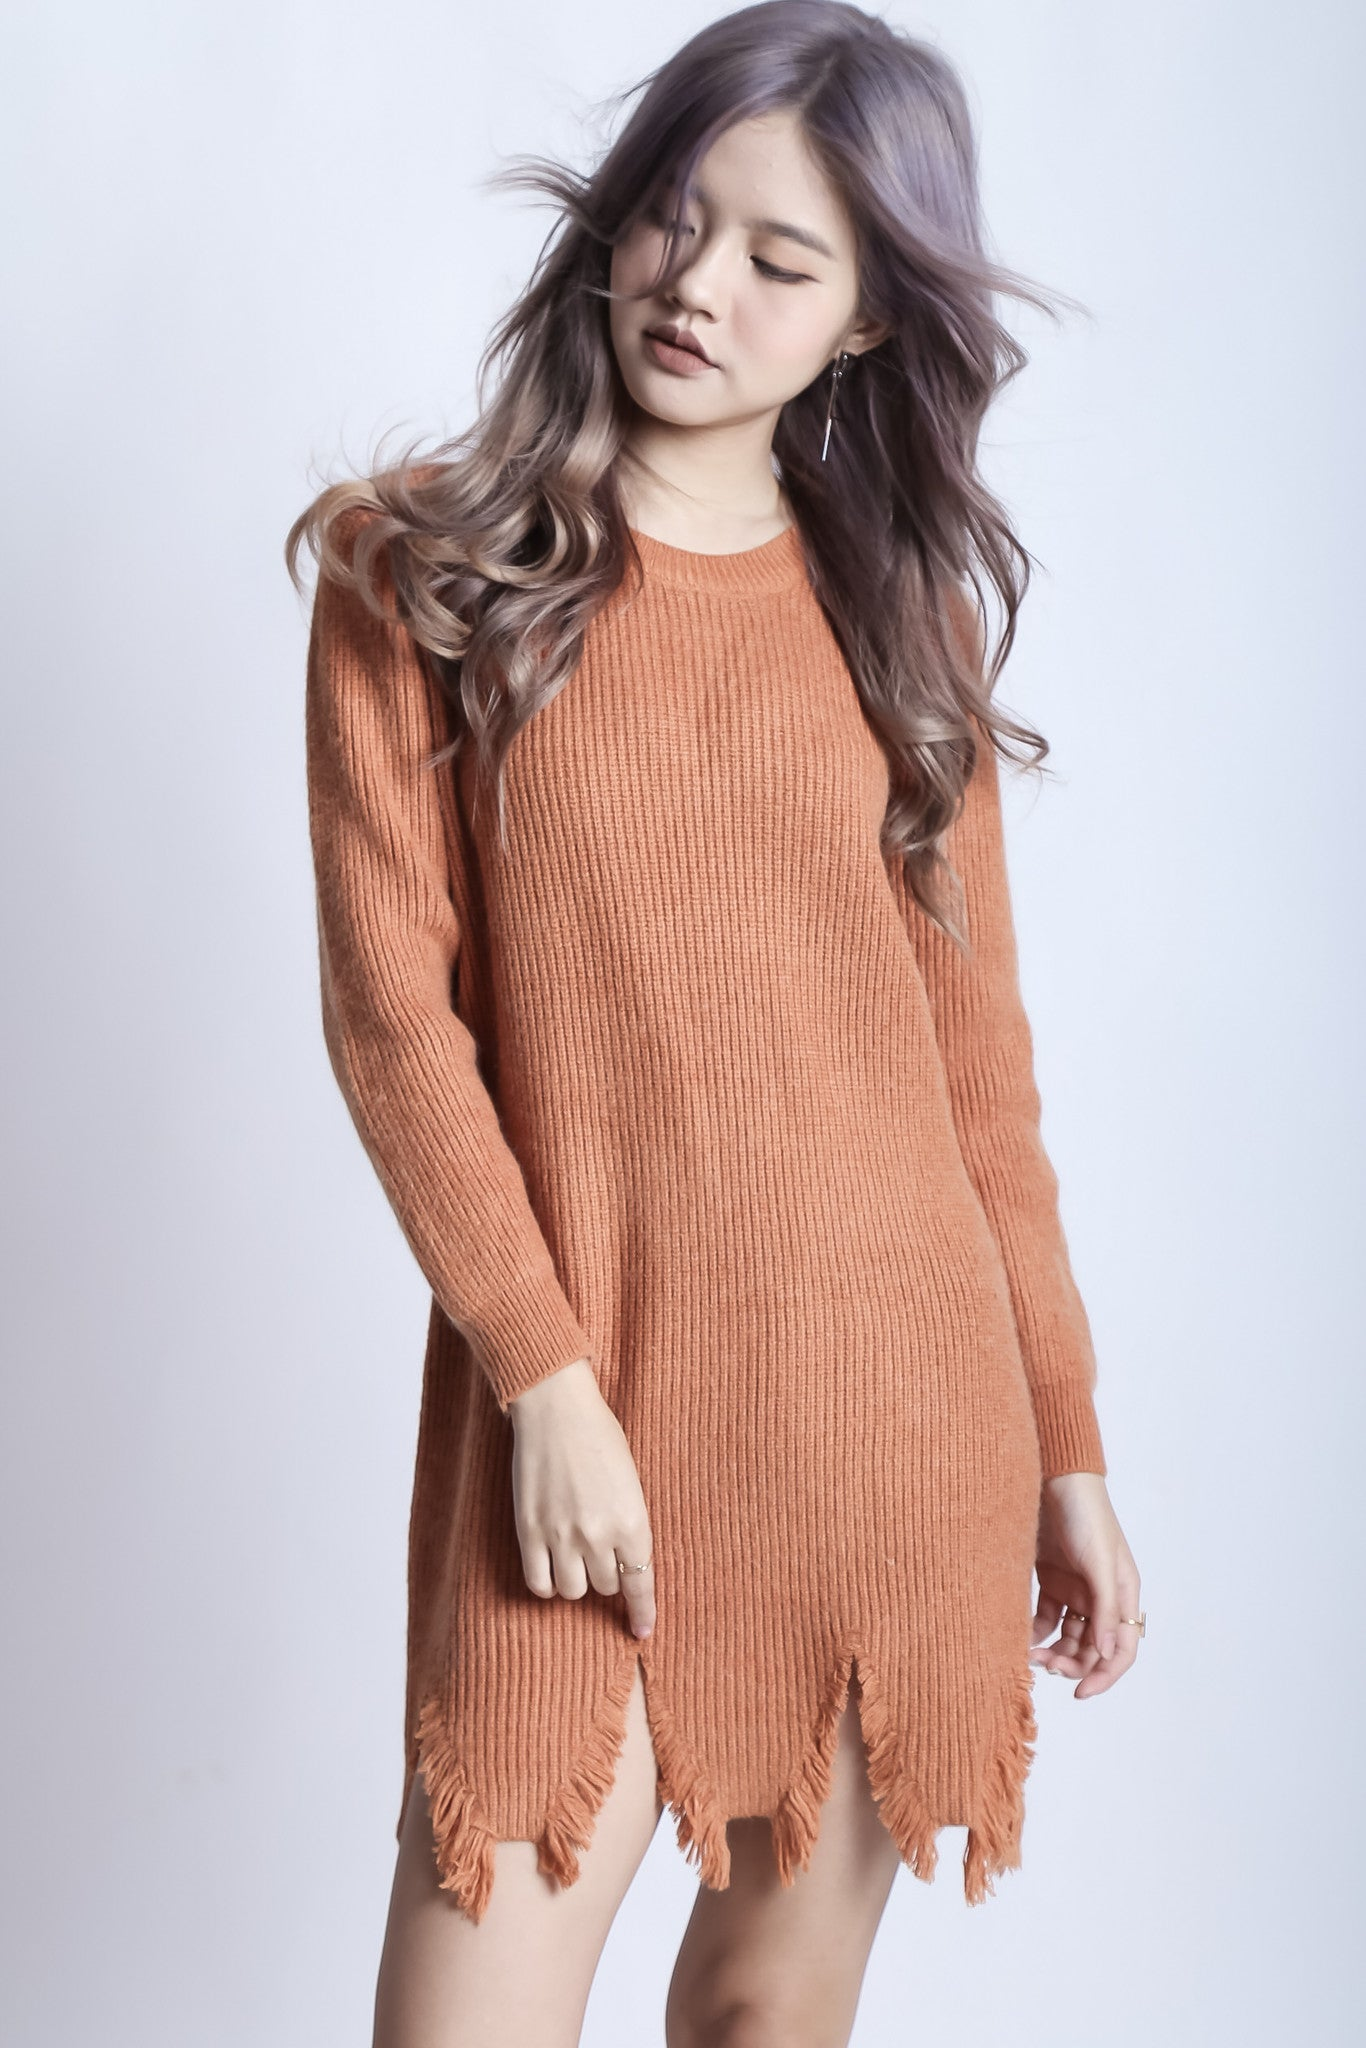 SHREDDED KNIT DRESS IN CAMEL